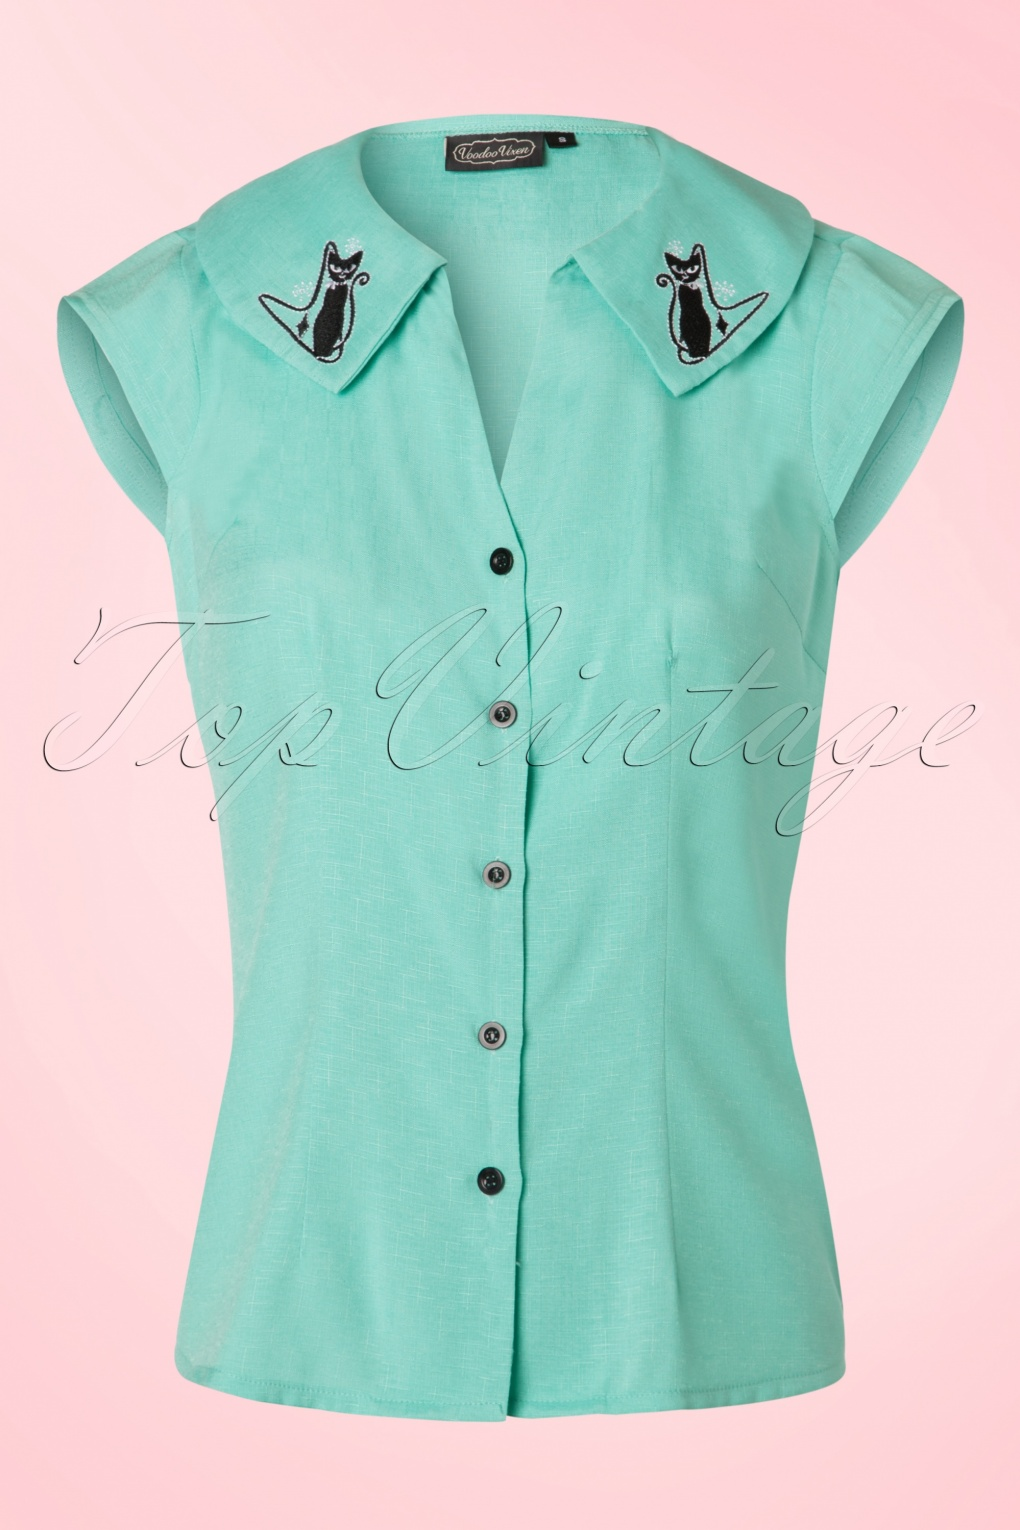 1950s Rockabilly & Pinup Tops, Shirts, Blouses 50s Maya Cat Blouse in Mint Green £34.32 AT vintagedancer.com